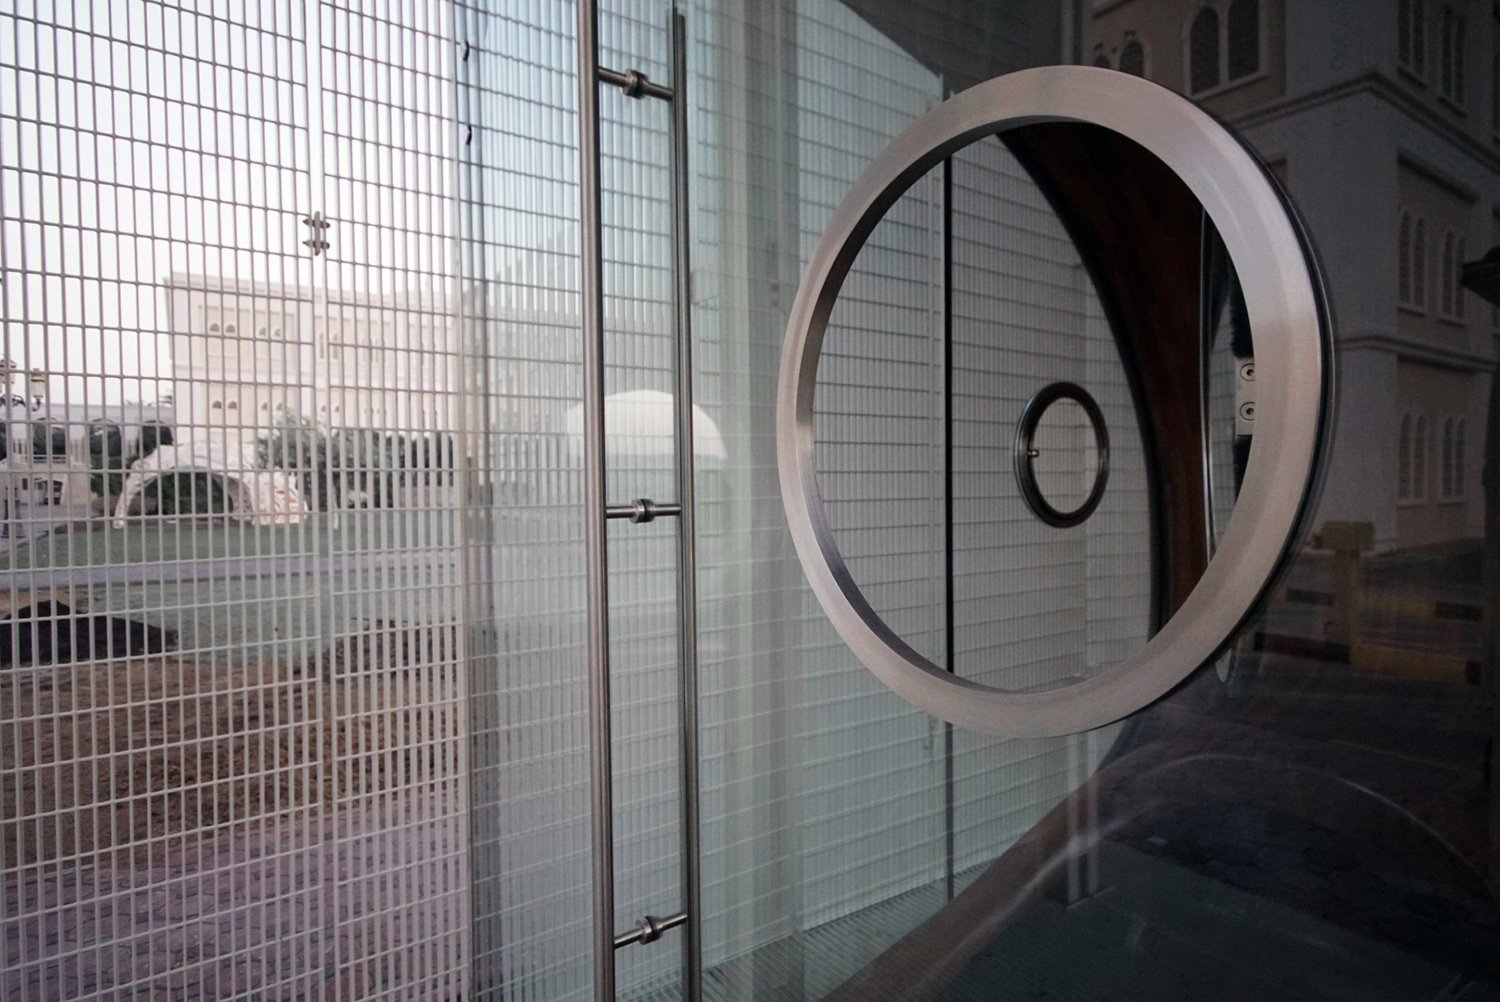 View of Security Booth air conditioned space through entry door and porthole window Juan Roldan, 2018